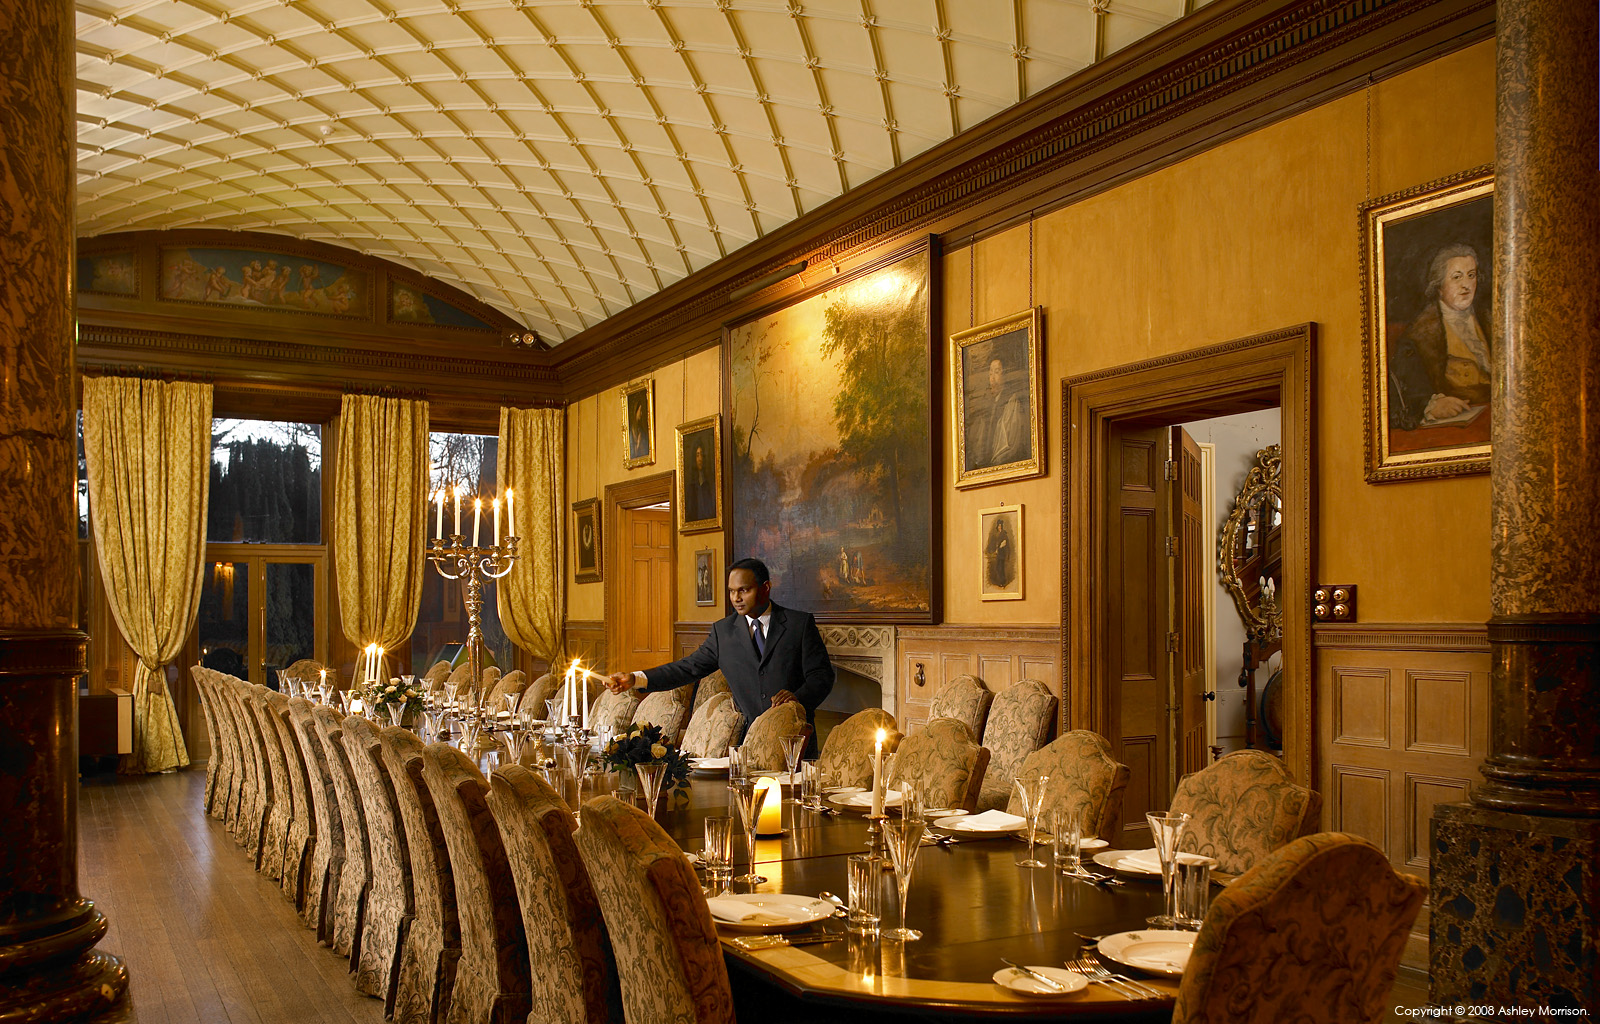 The Dinning room & gallery at Castle Leslie in Co Monaghan.